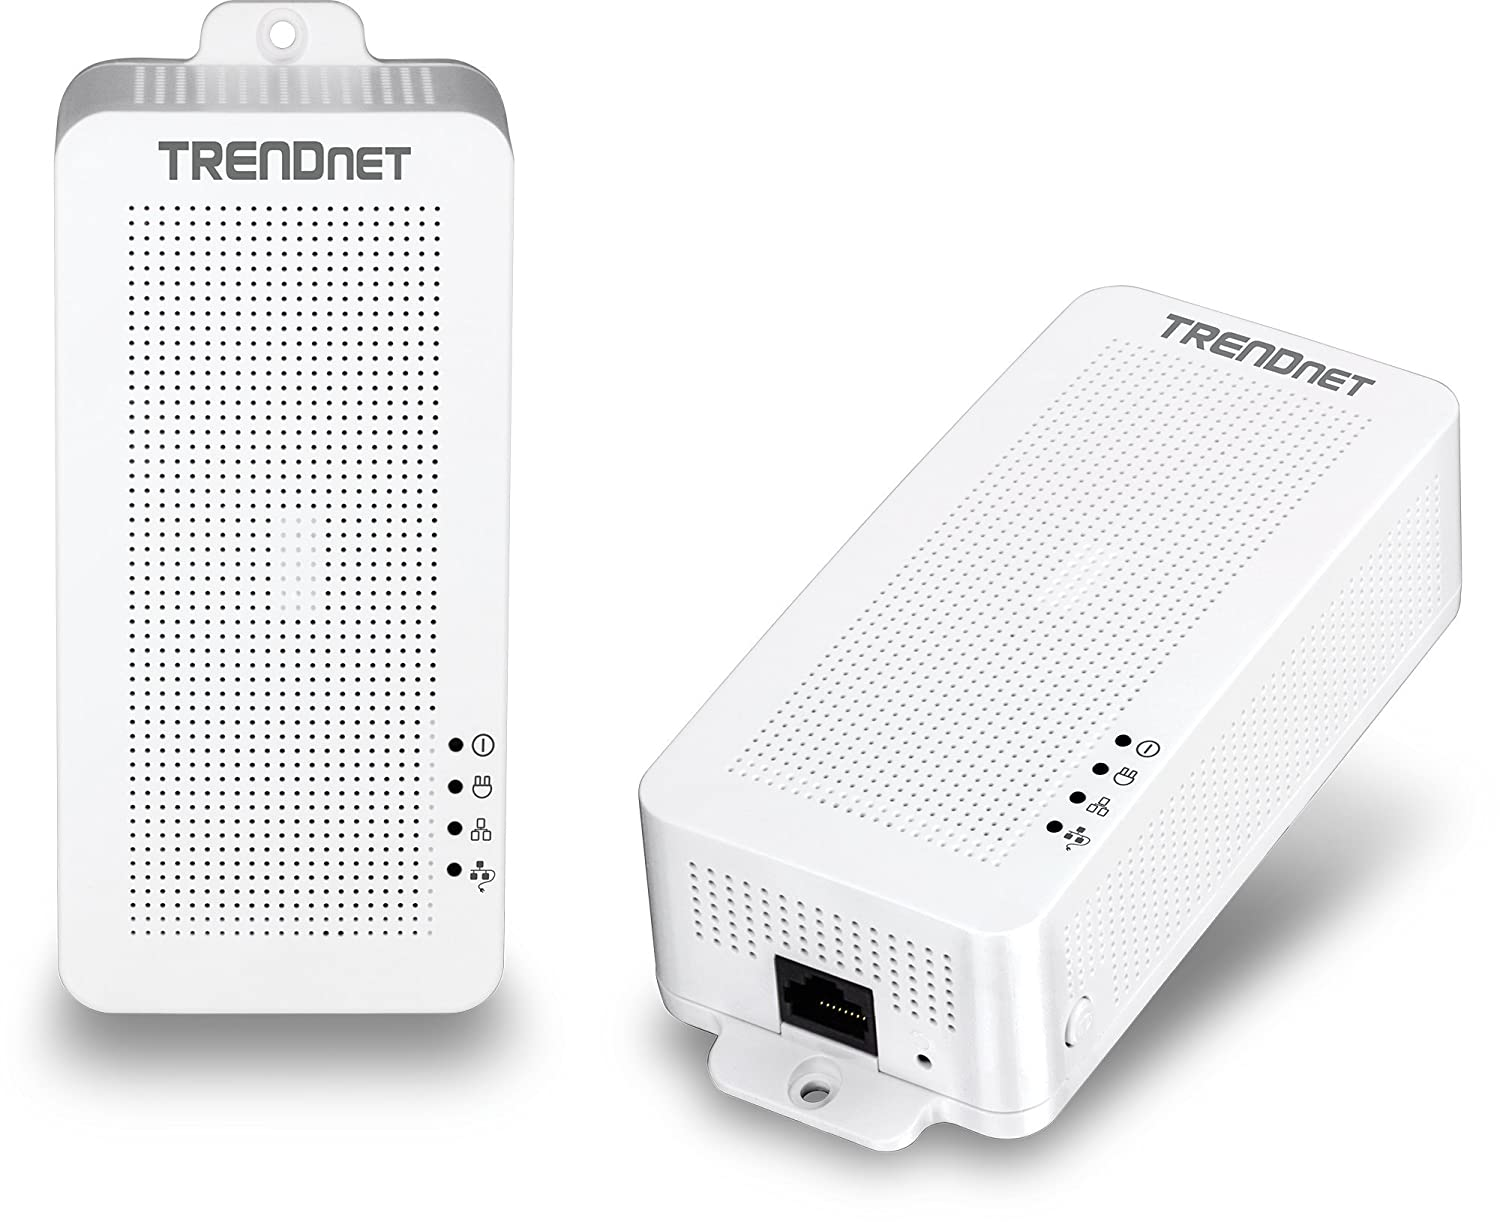 devices and PoE+ Range Up to 300m TPL-331EP 30W TRENDnet Powerline 200 AV PoE+ Adapter PoE+ Output Port Supports PoE 984 ft. 15.4W